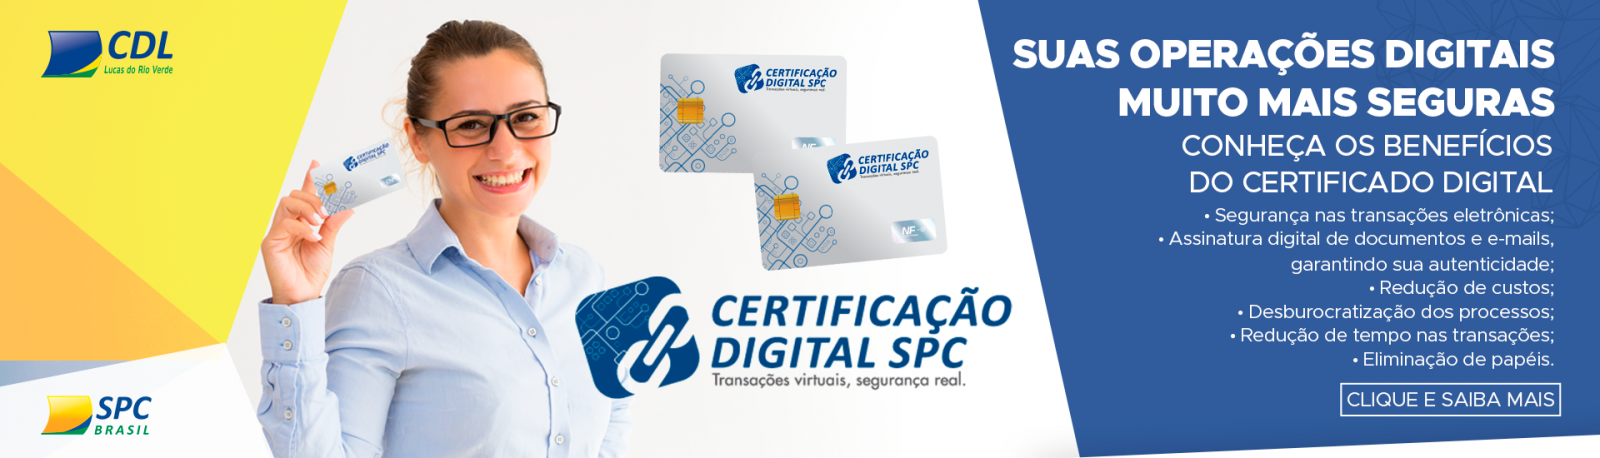 Certificado Digital Certificado-Digital